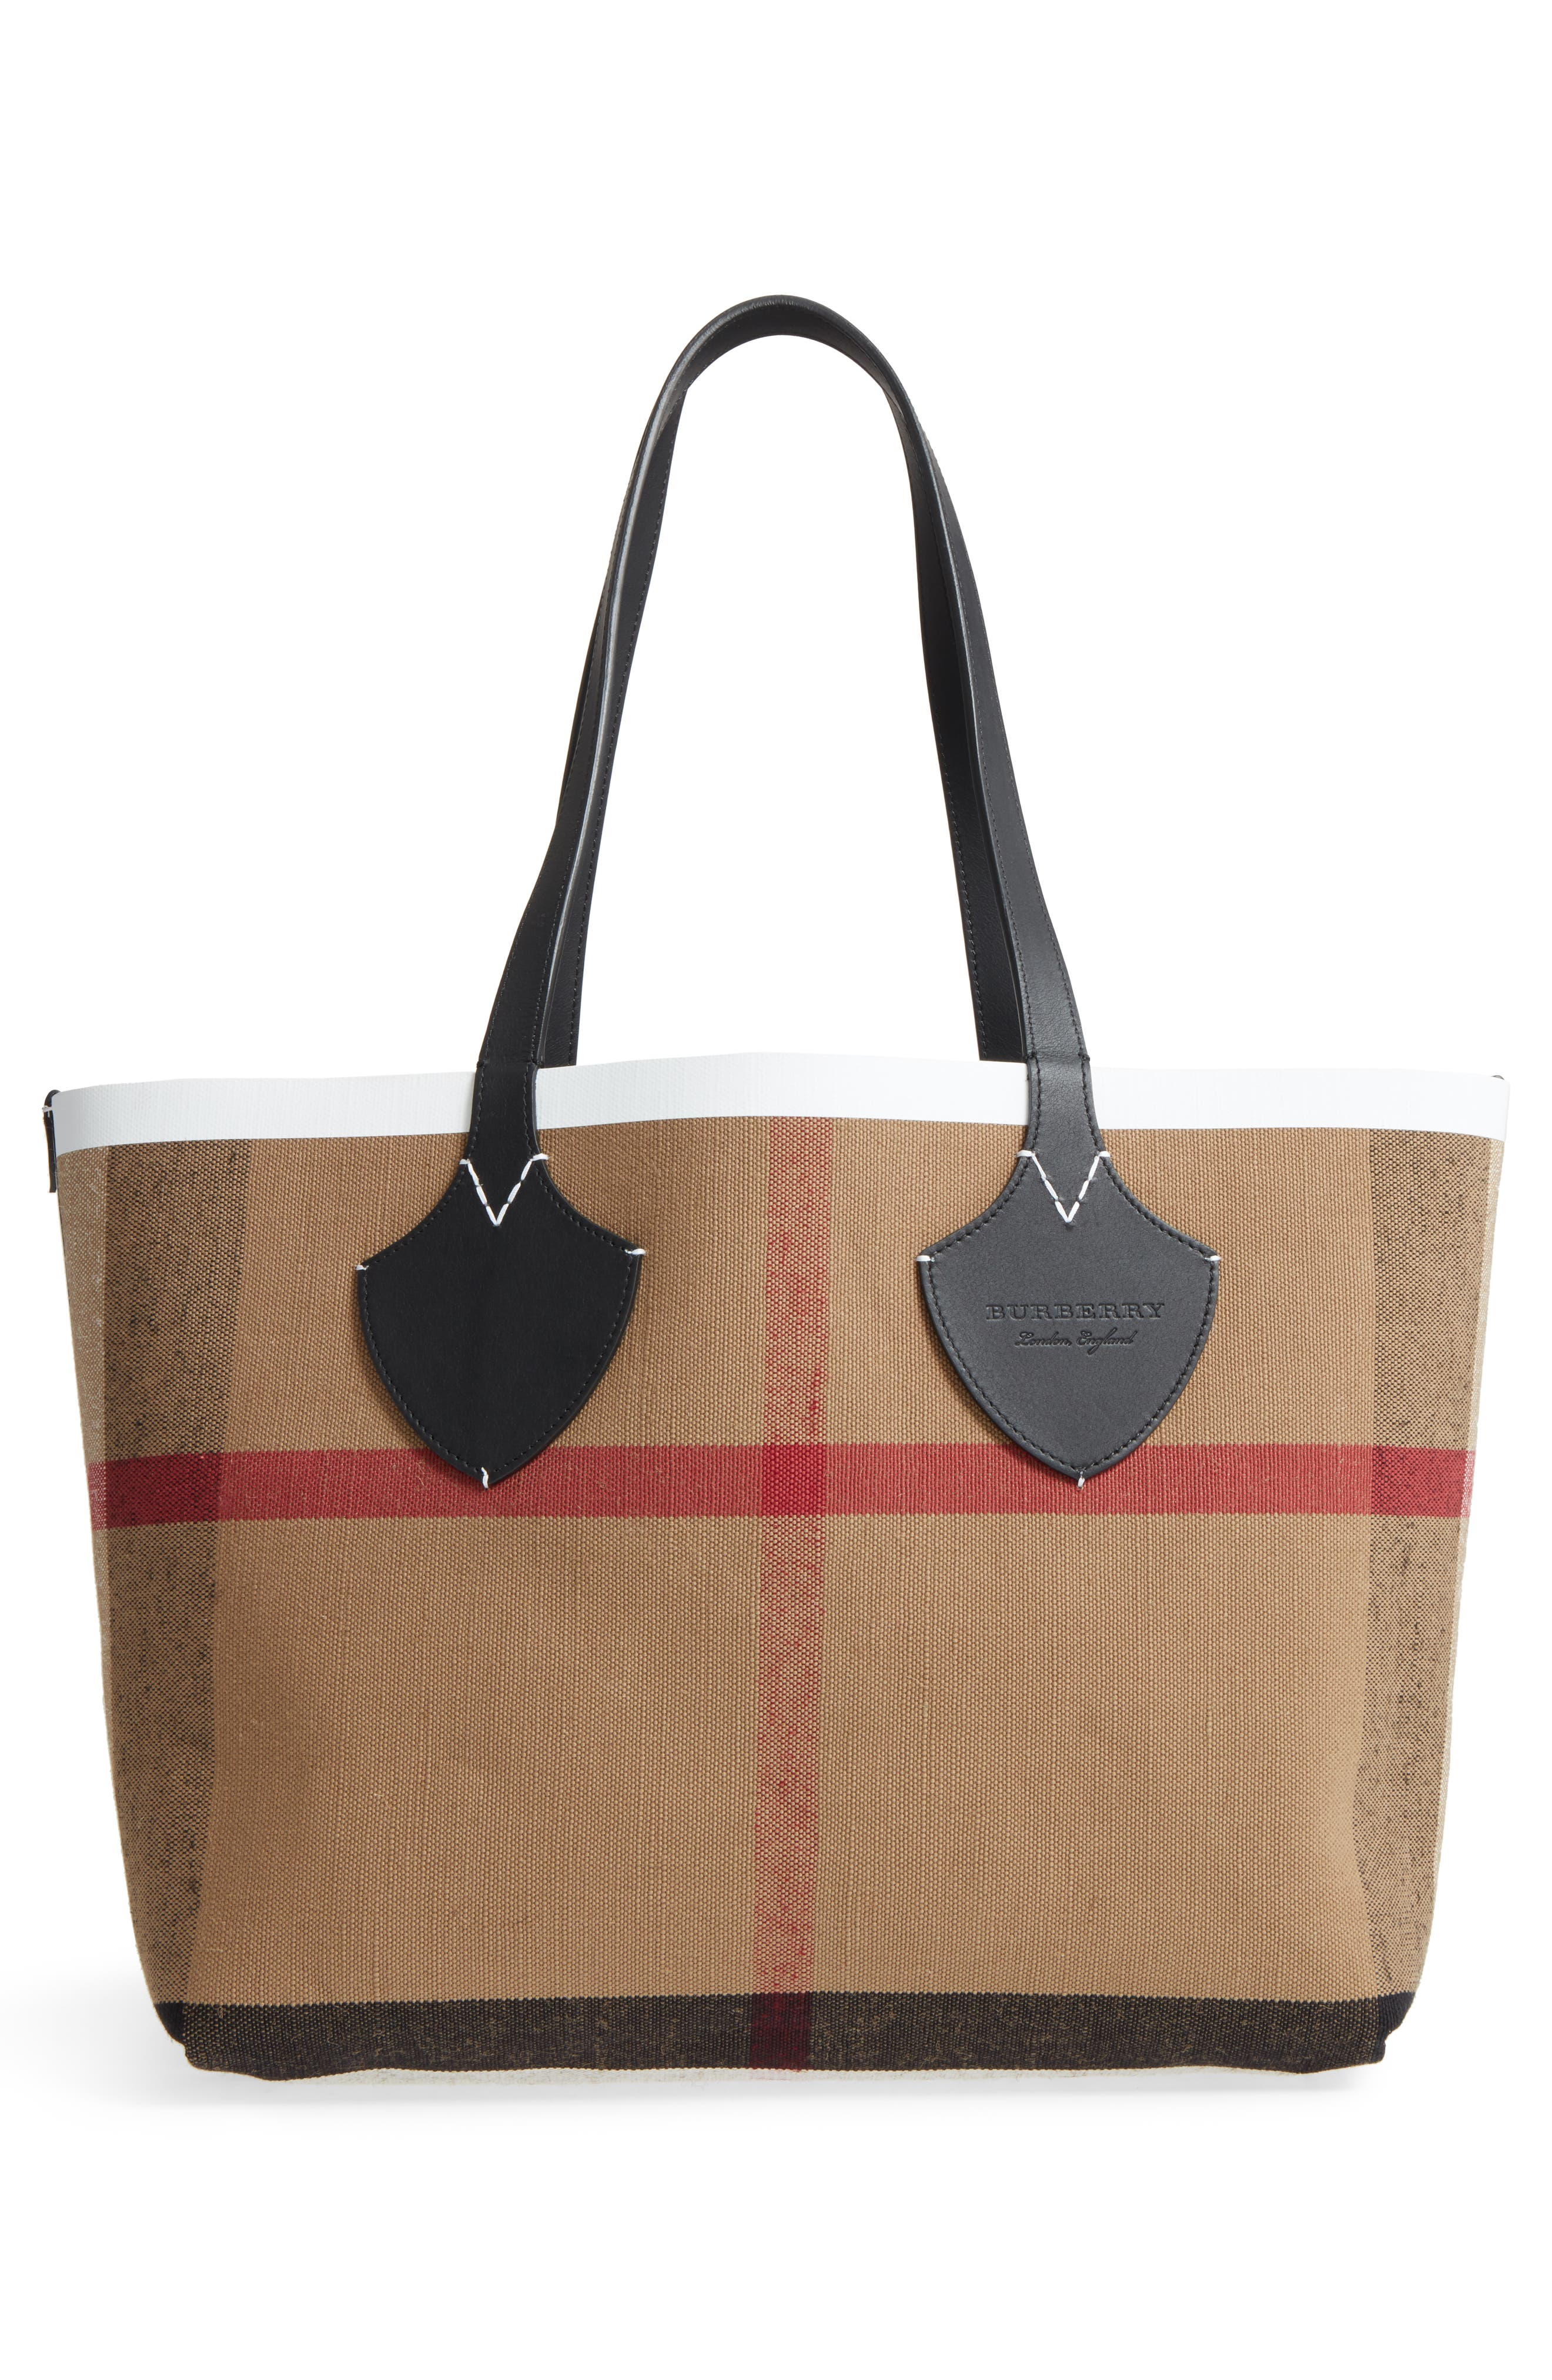 Medium Reversible Leather & Check Canvas Tote,                             Alternate thumbnail 3, color,                             100